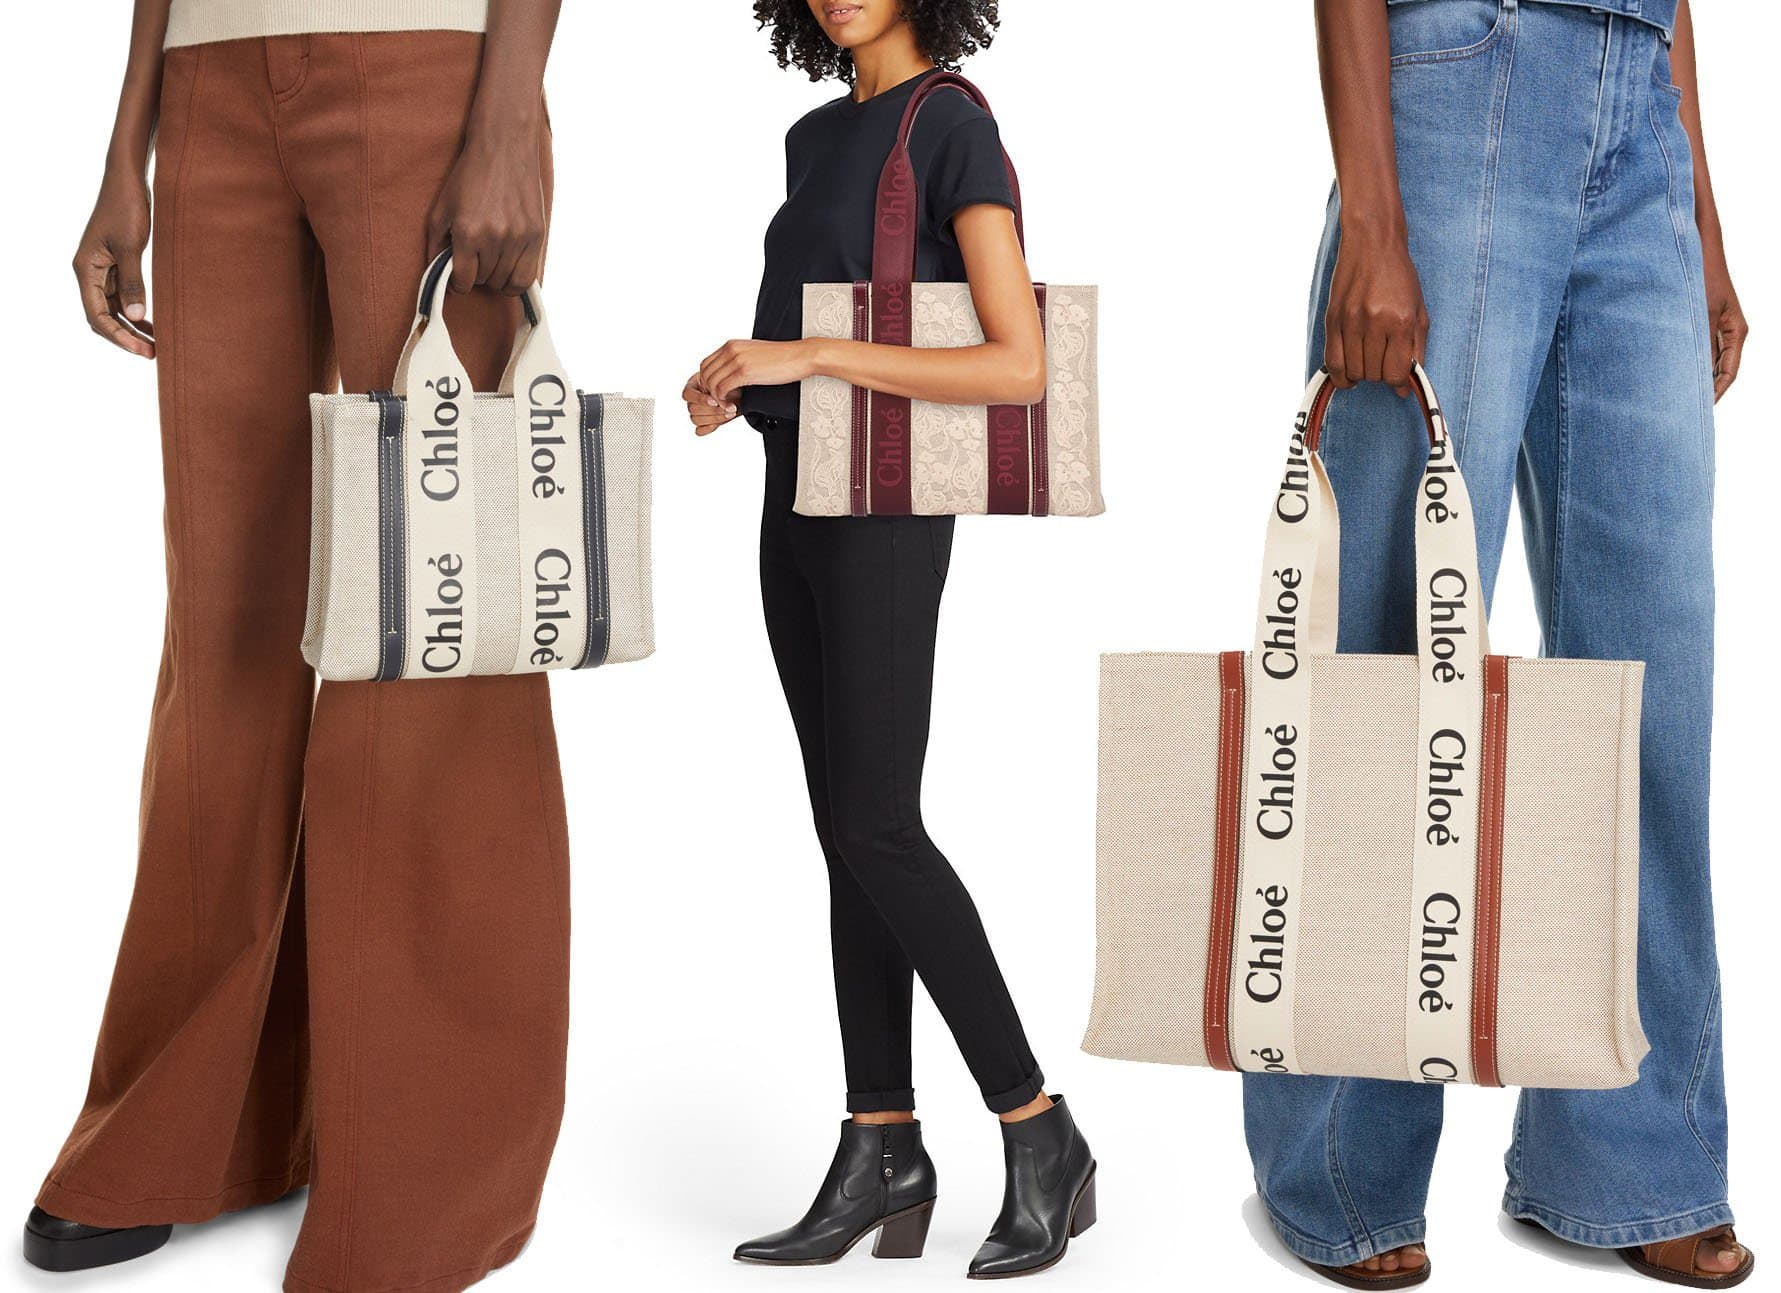 The Woody tote features a boxy silhouette and logo-adorned webbing straps